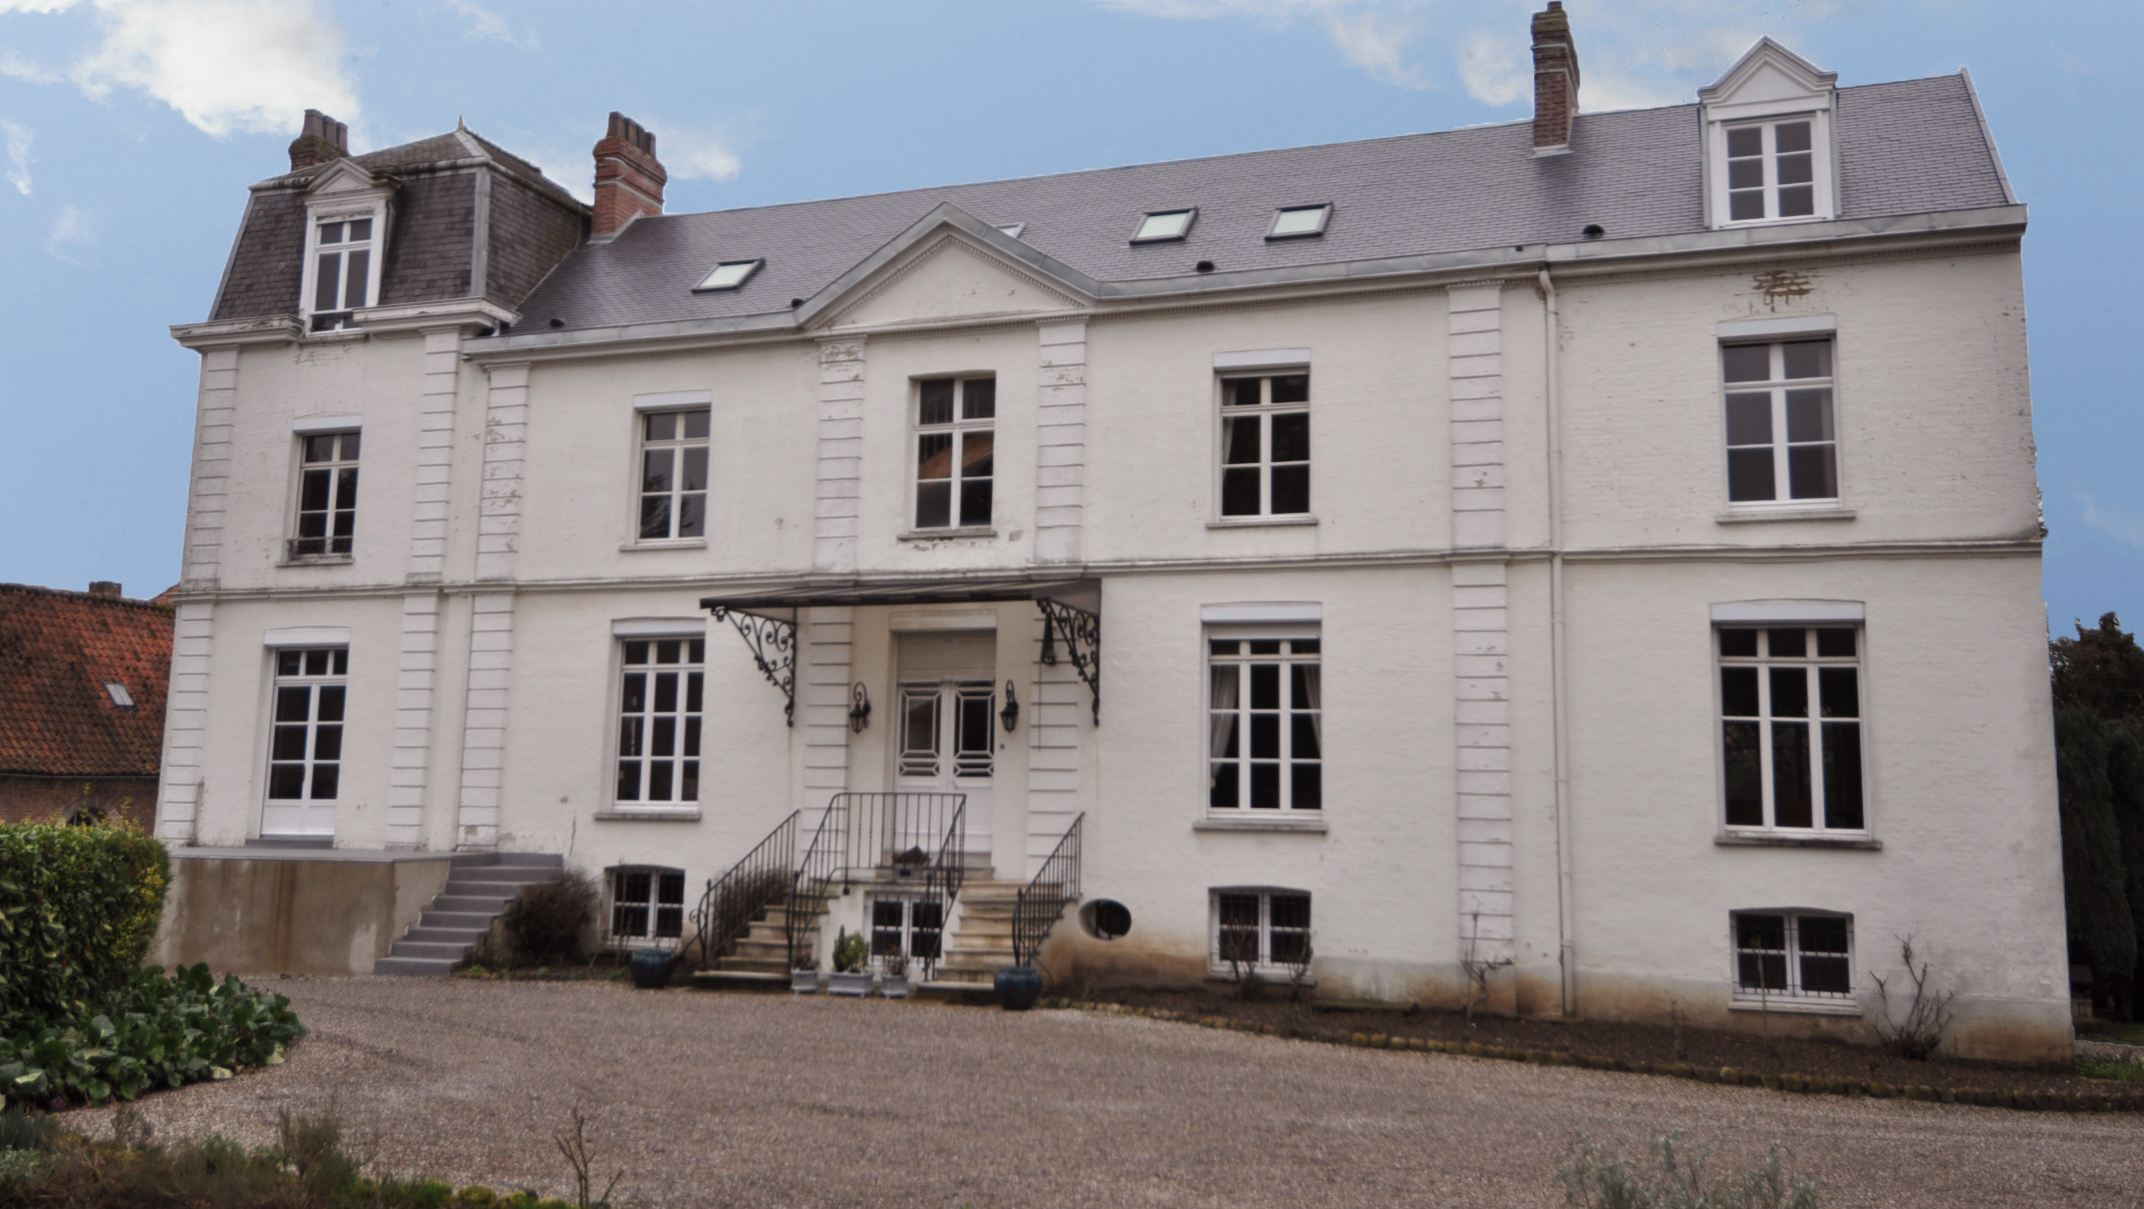 Property For Sale at SAINT-OMER at 10 minutes, Master house 400m² hab. 12 Br.